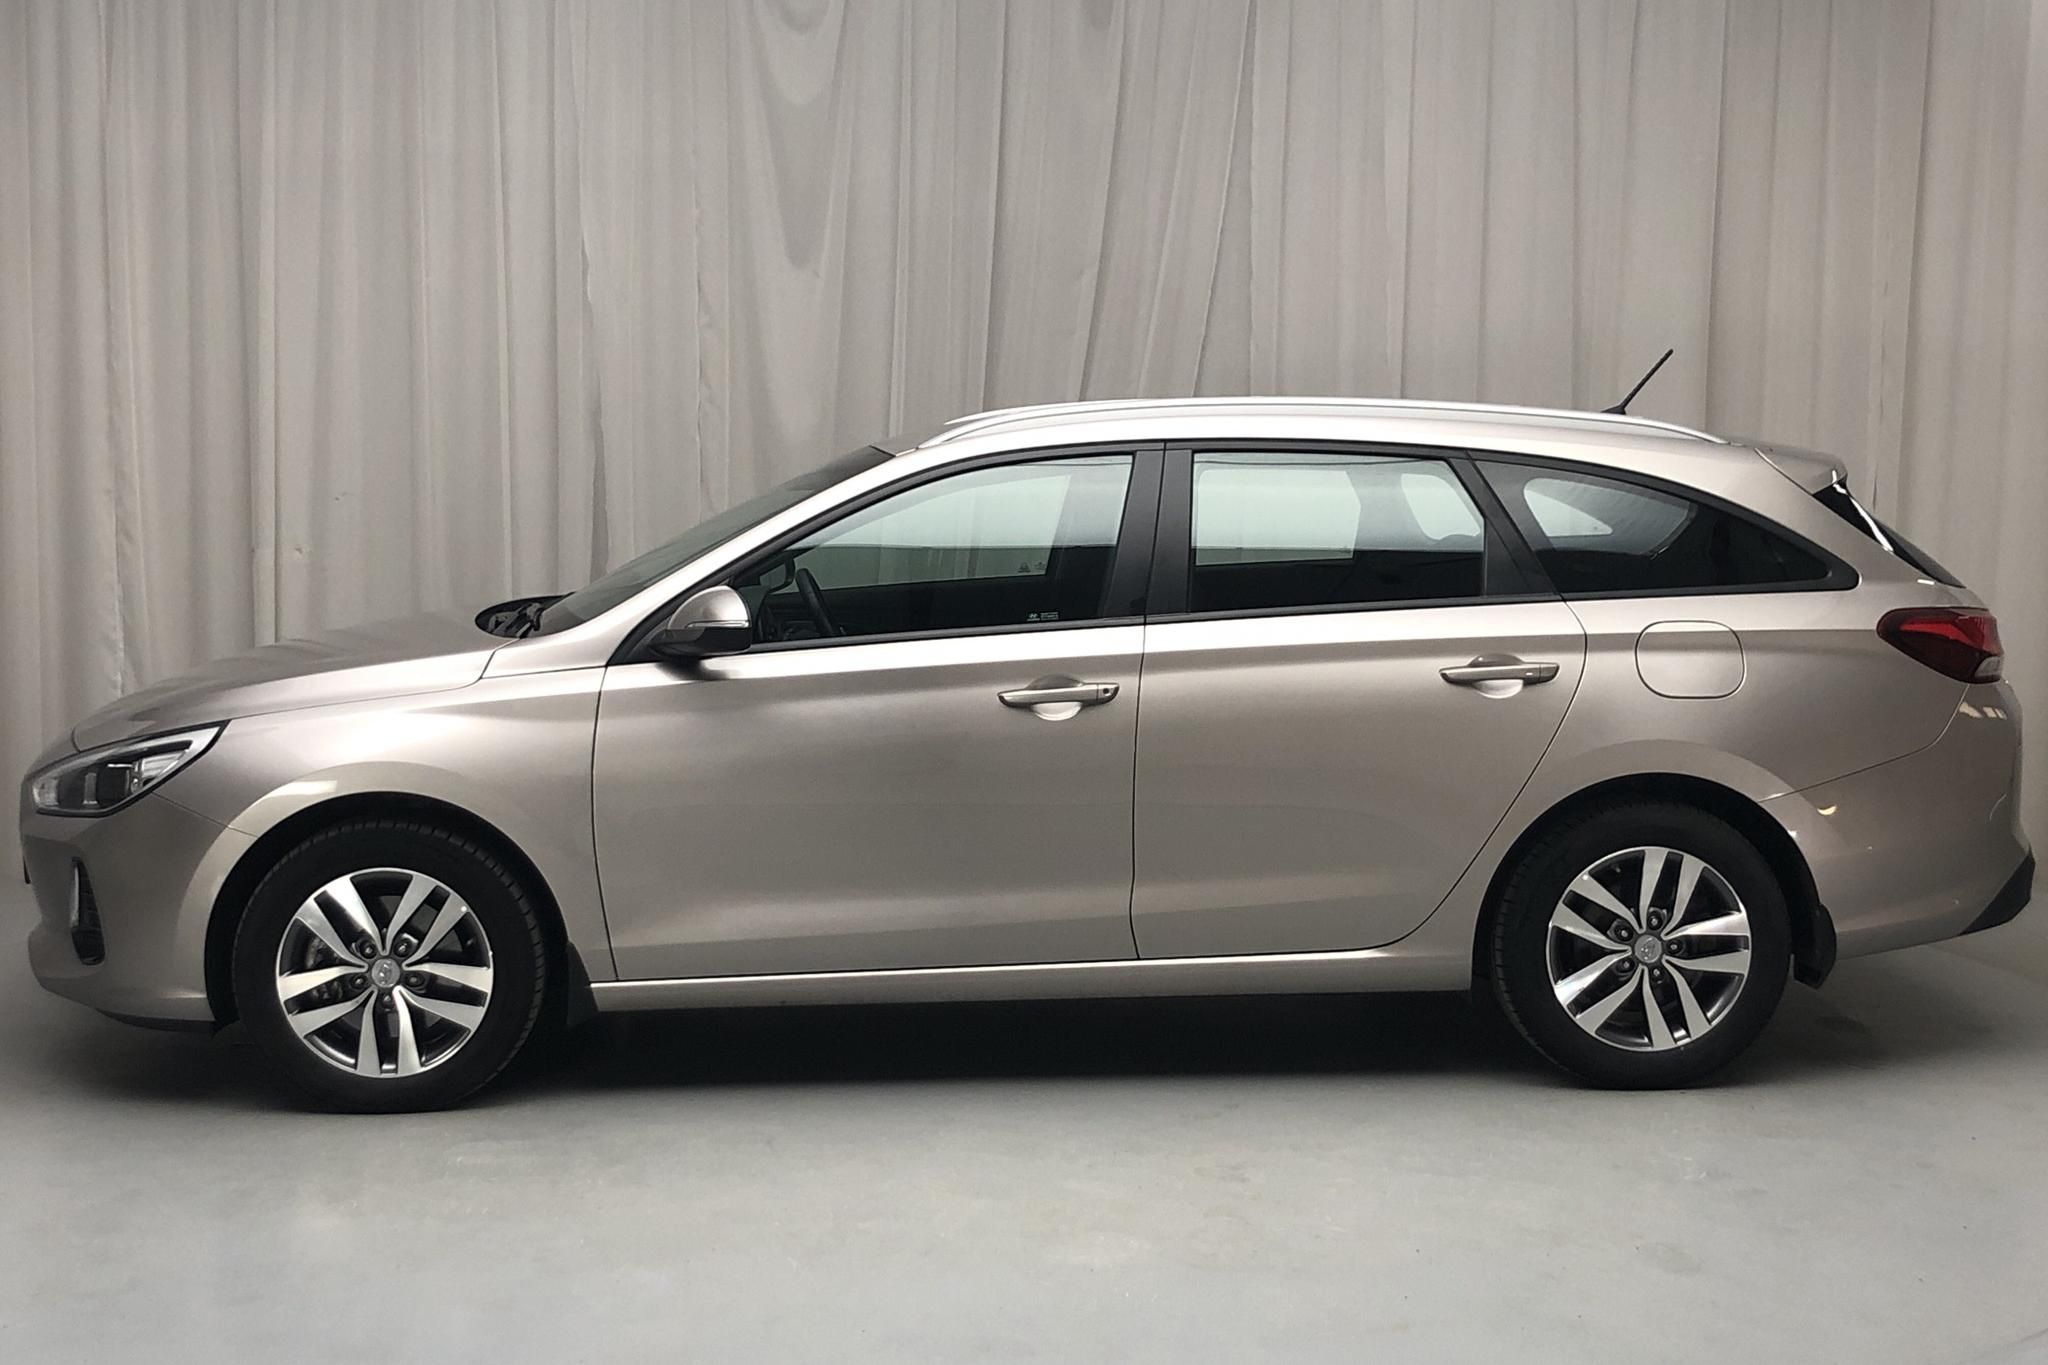 Hyundai i30 1.6 D Kombi (110hk) - 3 111 mil - Automat - Light Brown - 2018